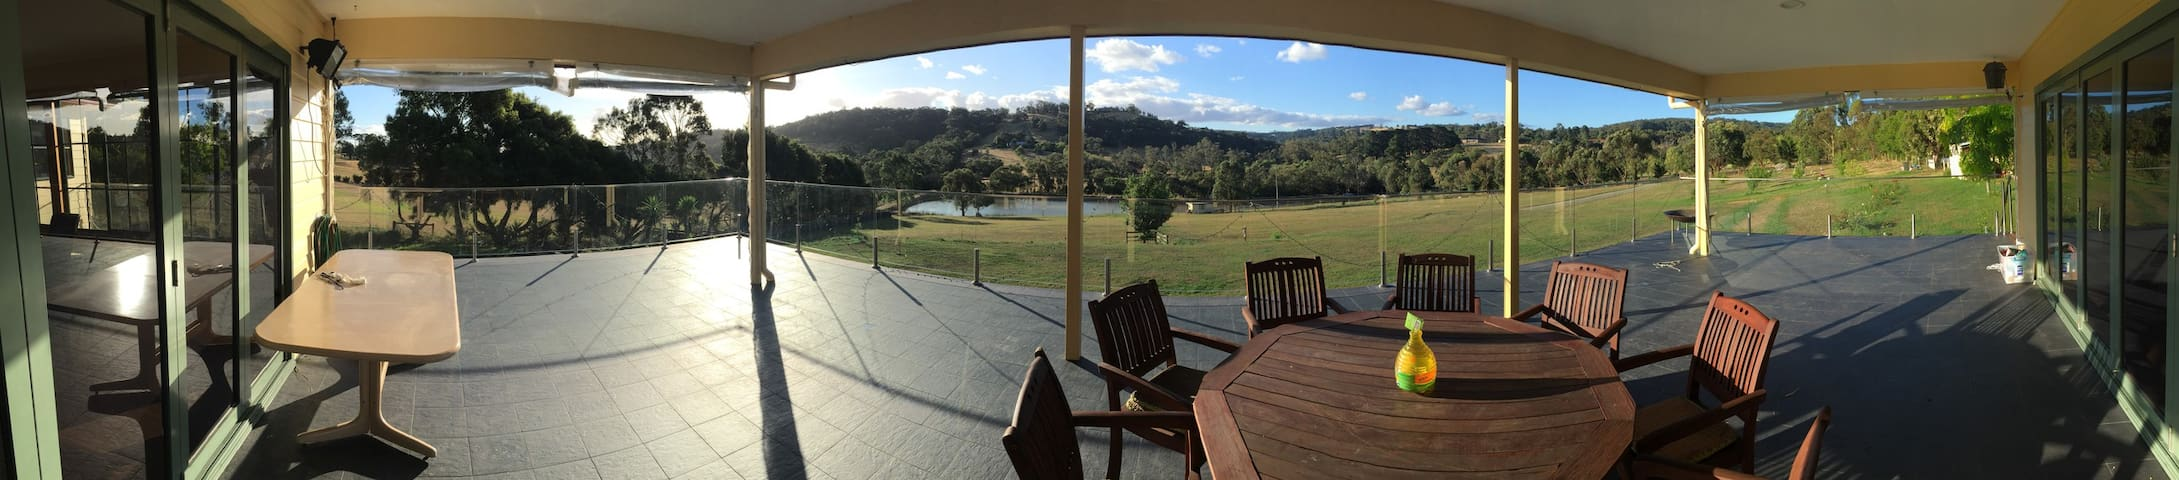 Peaceful farm stay with gorgeous views - Pakenham - Apartment